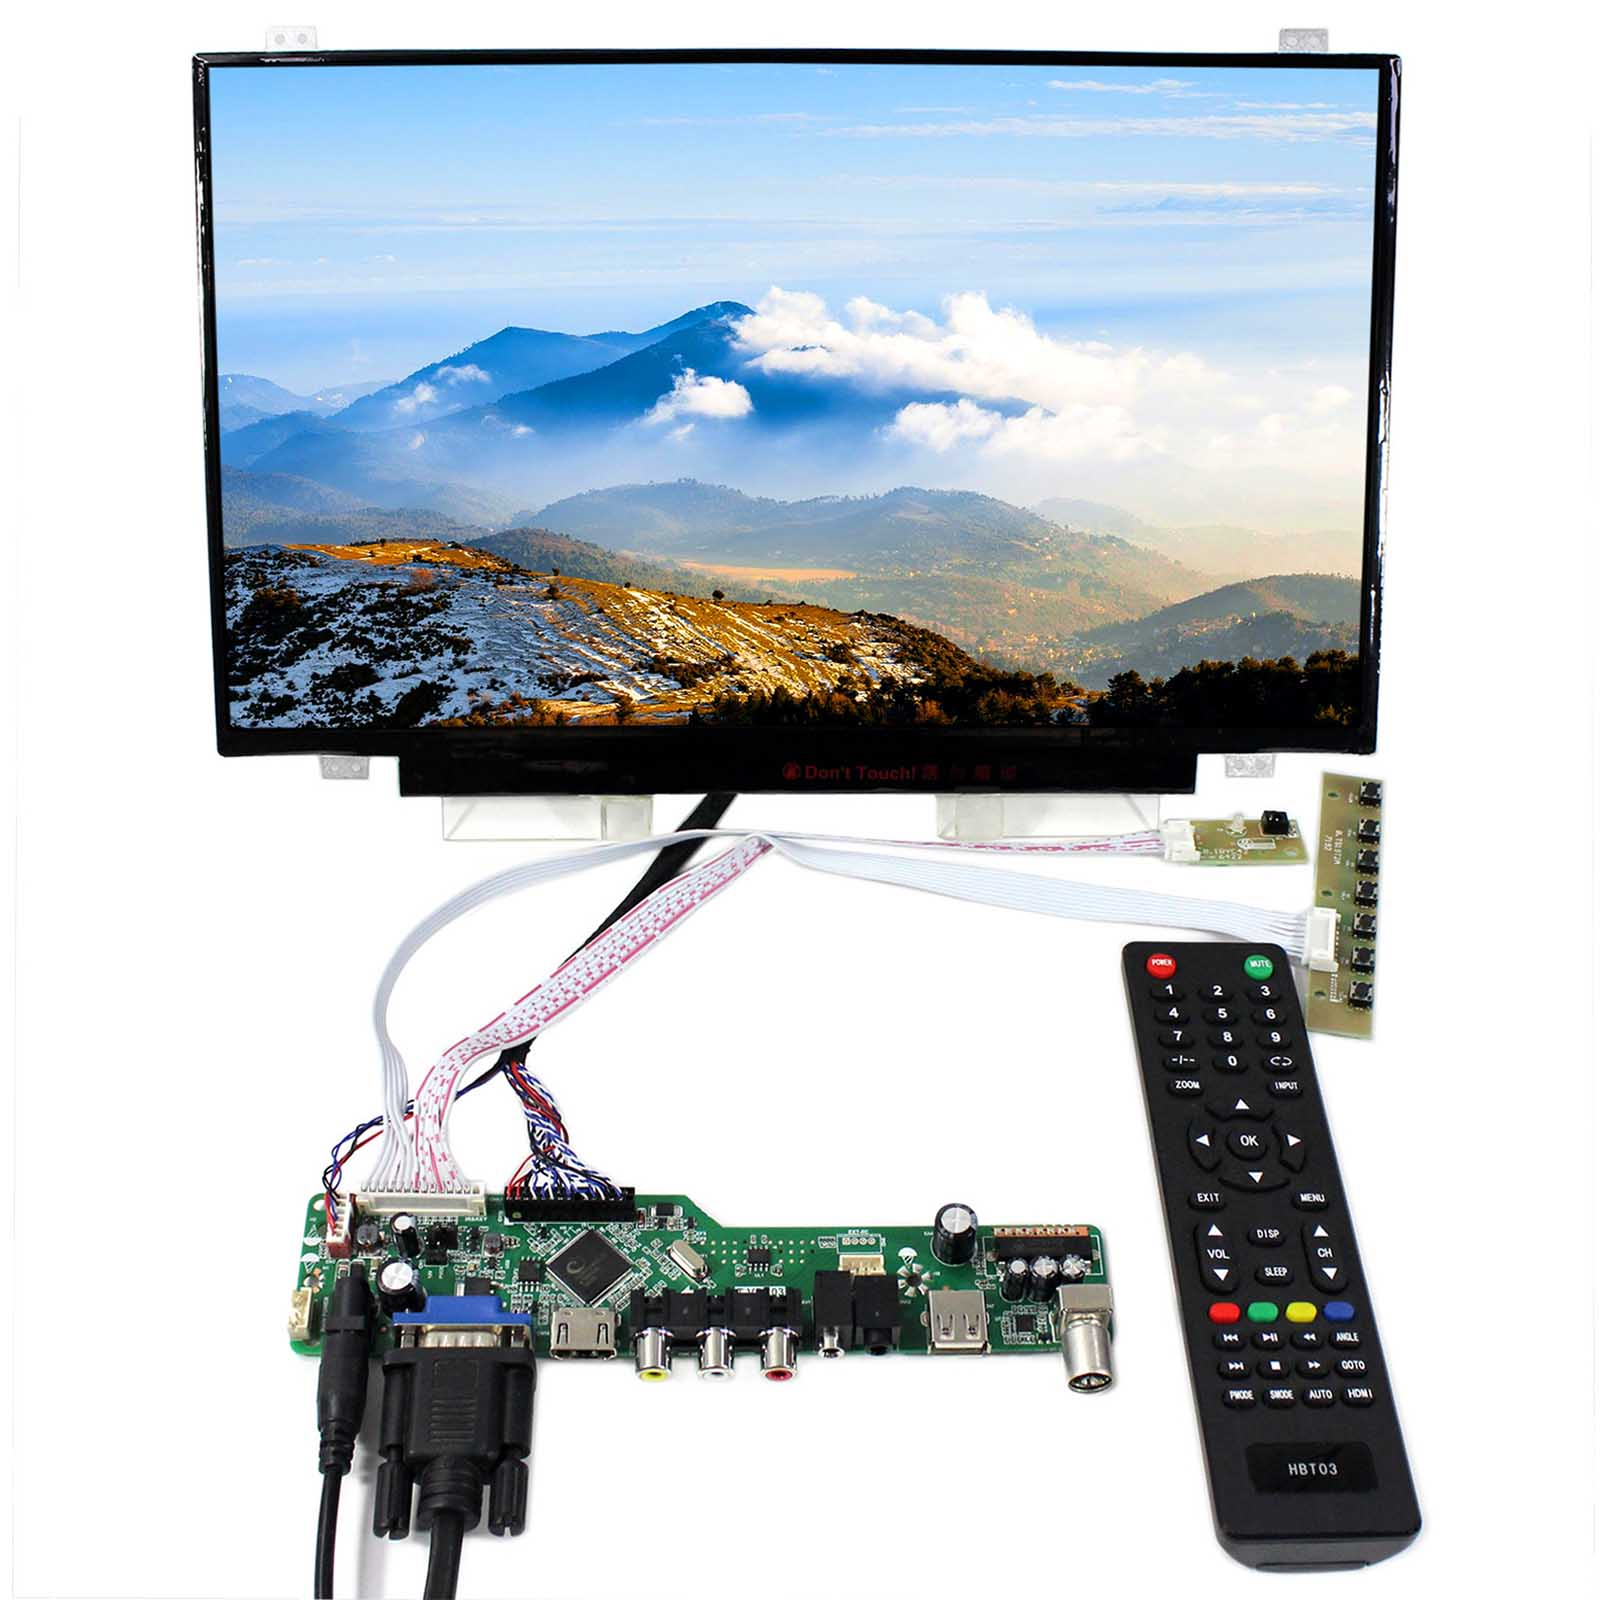 TV HDMI VGA AV USB AUDIO LCD Controller Board With 14inch LP140WD2 B140RW02 1600x900 LCD Screen tv pc hdmi cvbs rf usb audio driver board 13 3inch lp133wd1 sla1 1600x900 ips lcd